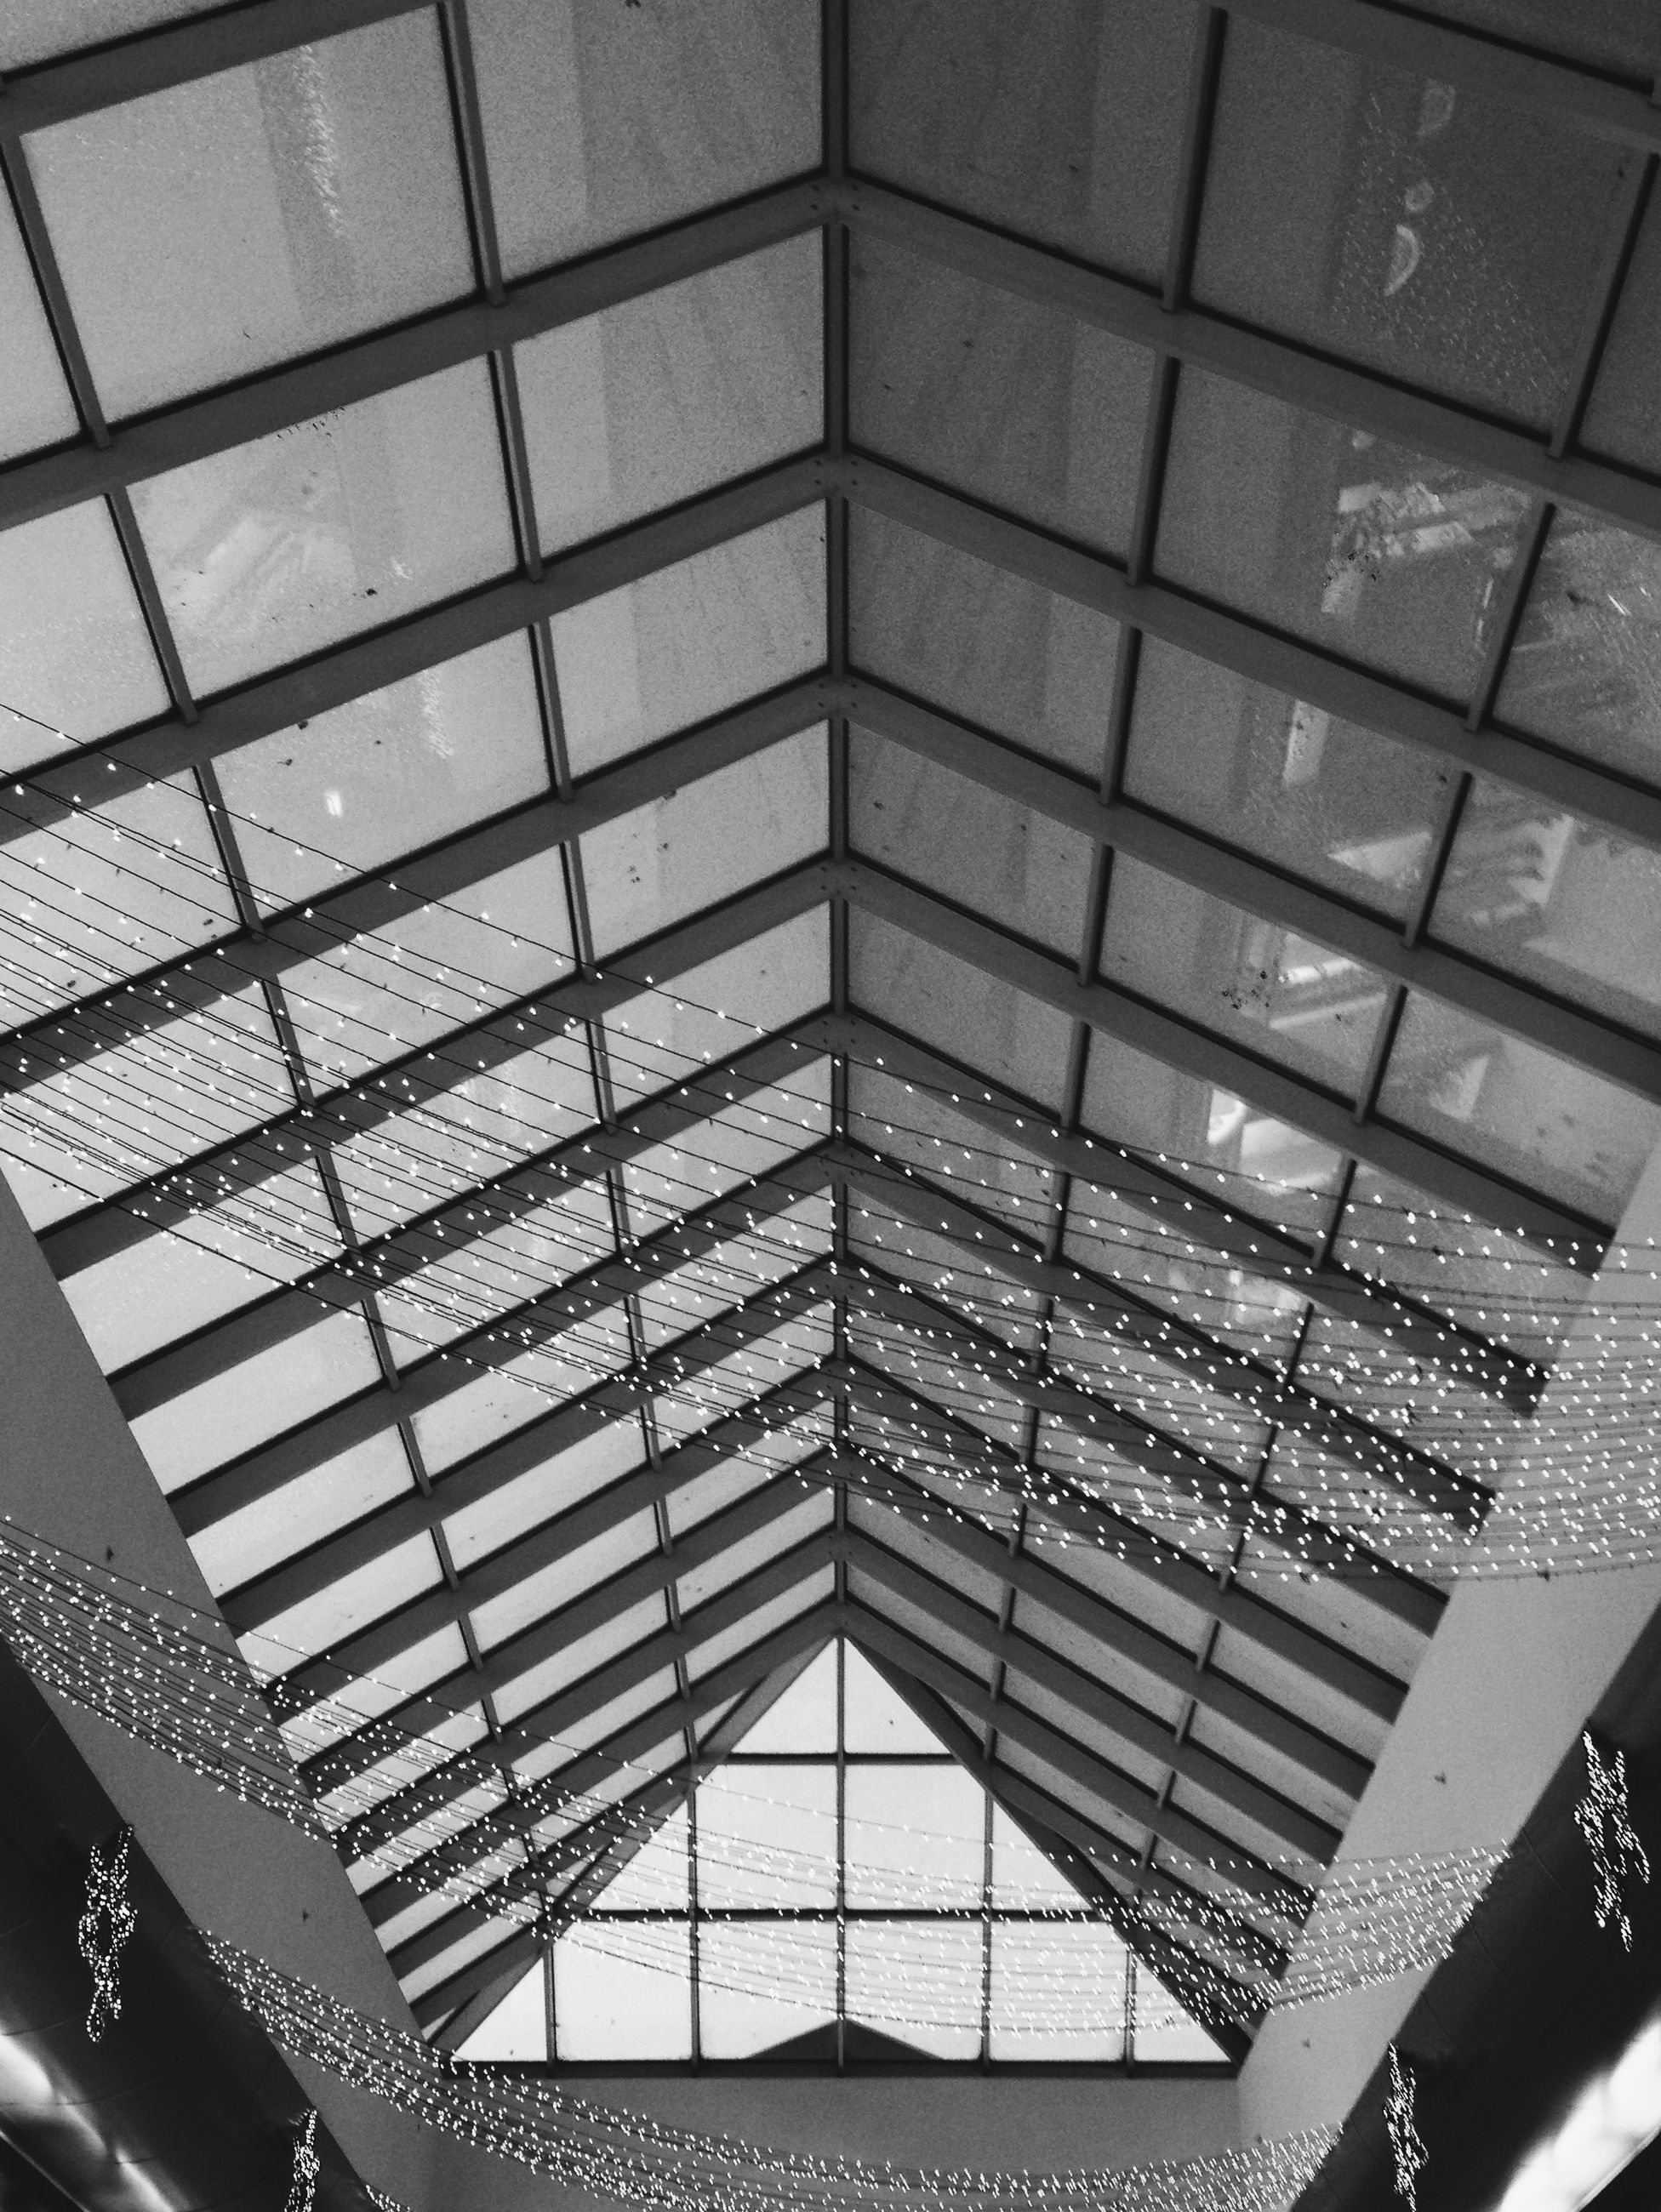 indoors, full frame, pattern, architecture, glass - material, window, built structure, backgrounds, ceiling, geometric shape, design, transparent, repetition, low angle view, modern, architectural feature, glass, square shape, no people, building